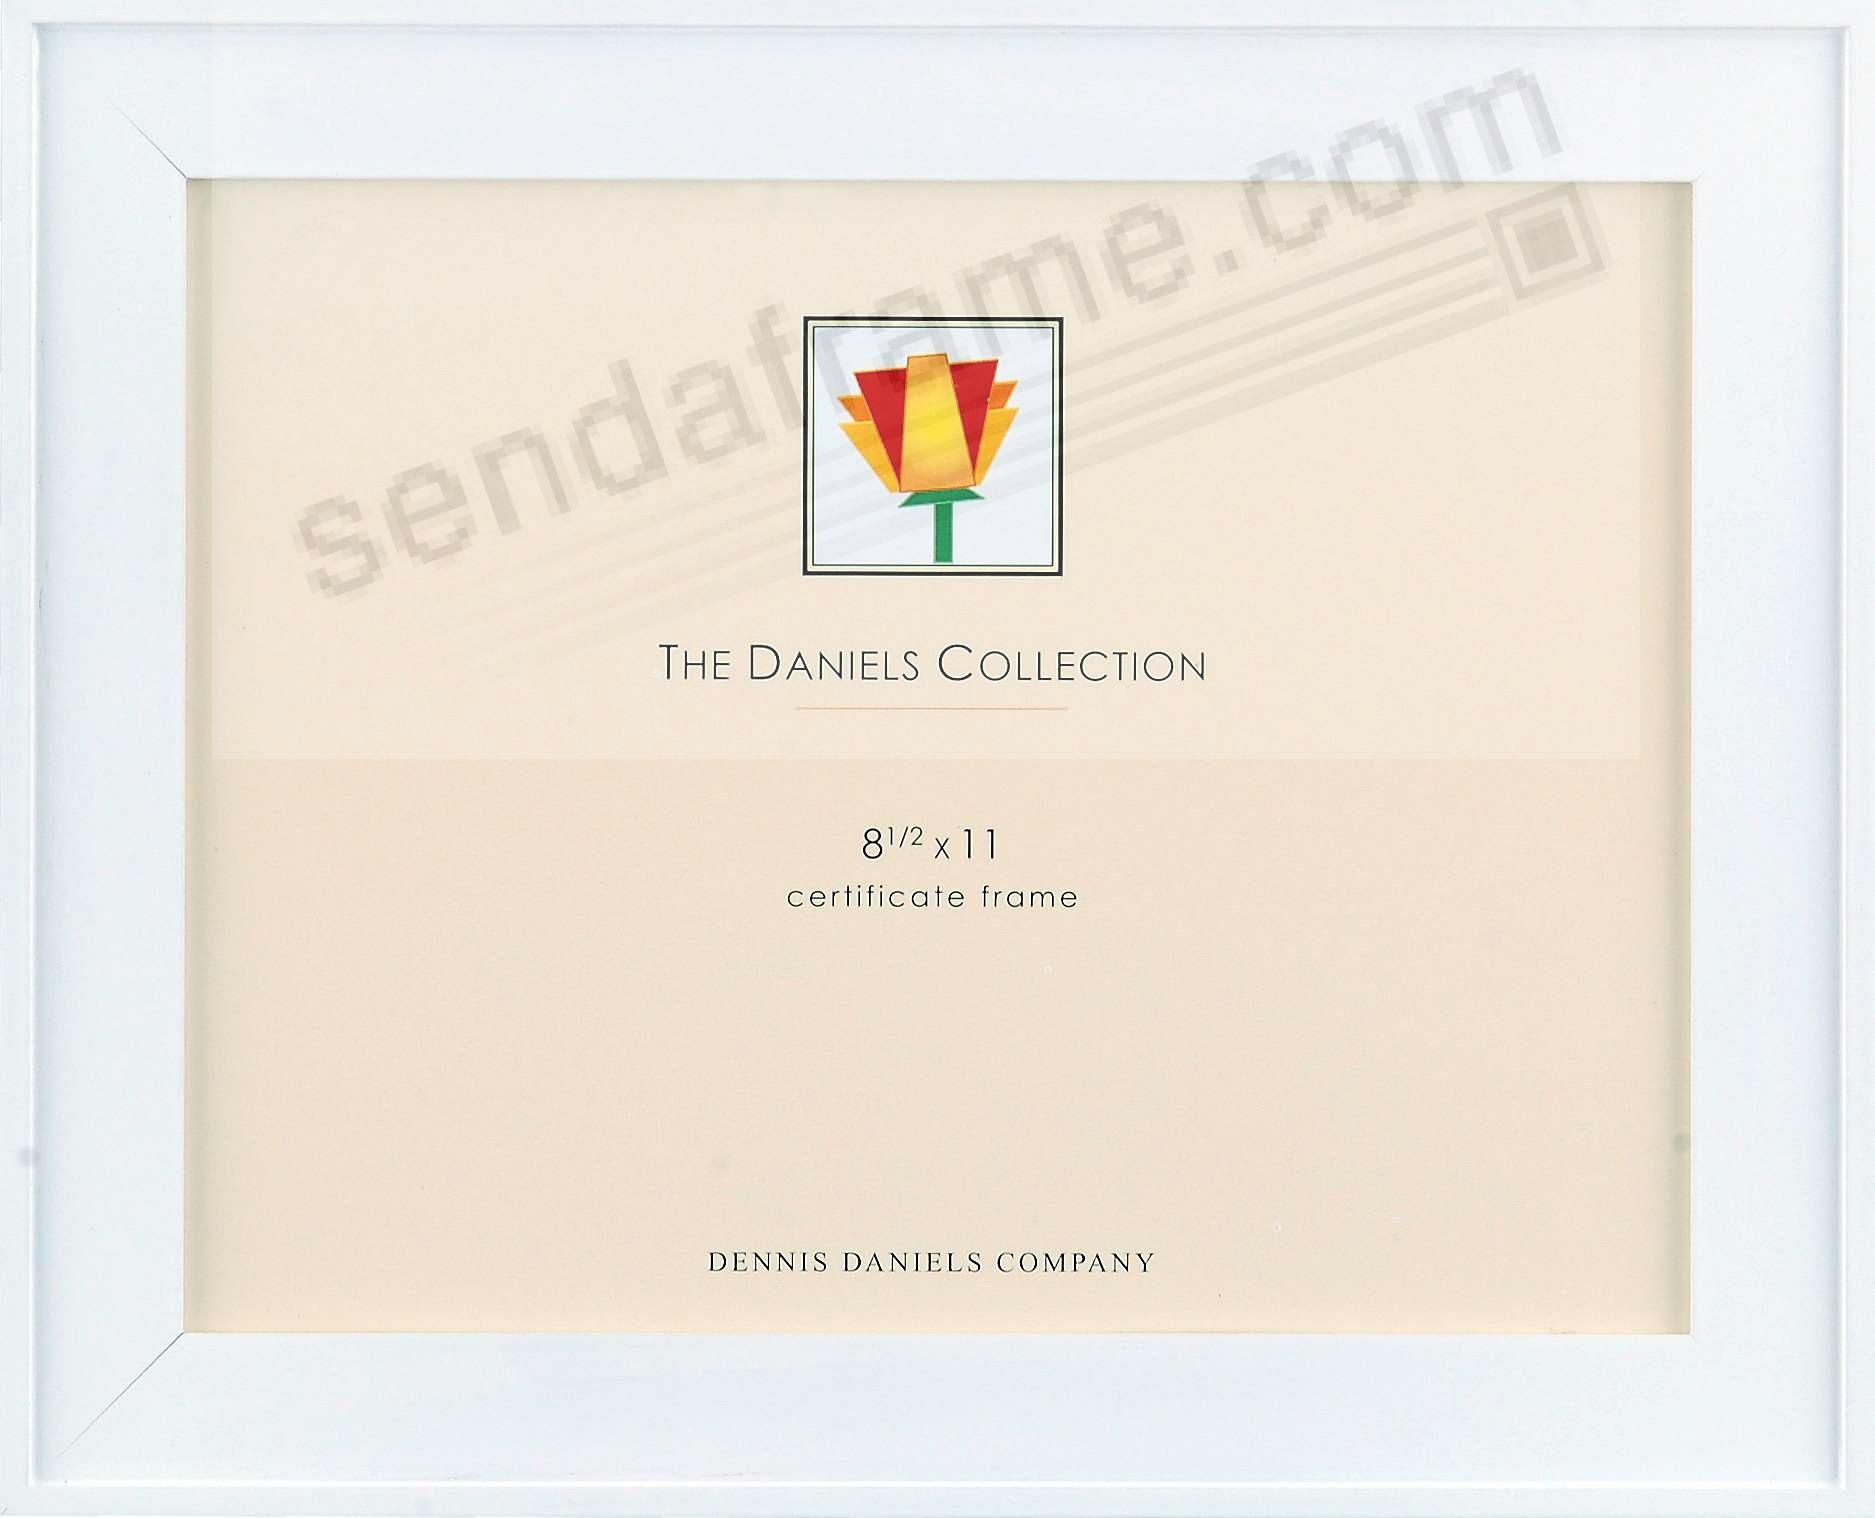 ONE-STEP gallery style frame in white by Dennis Daniels®